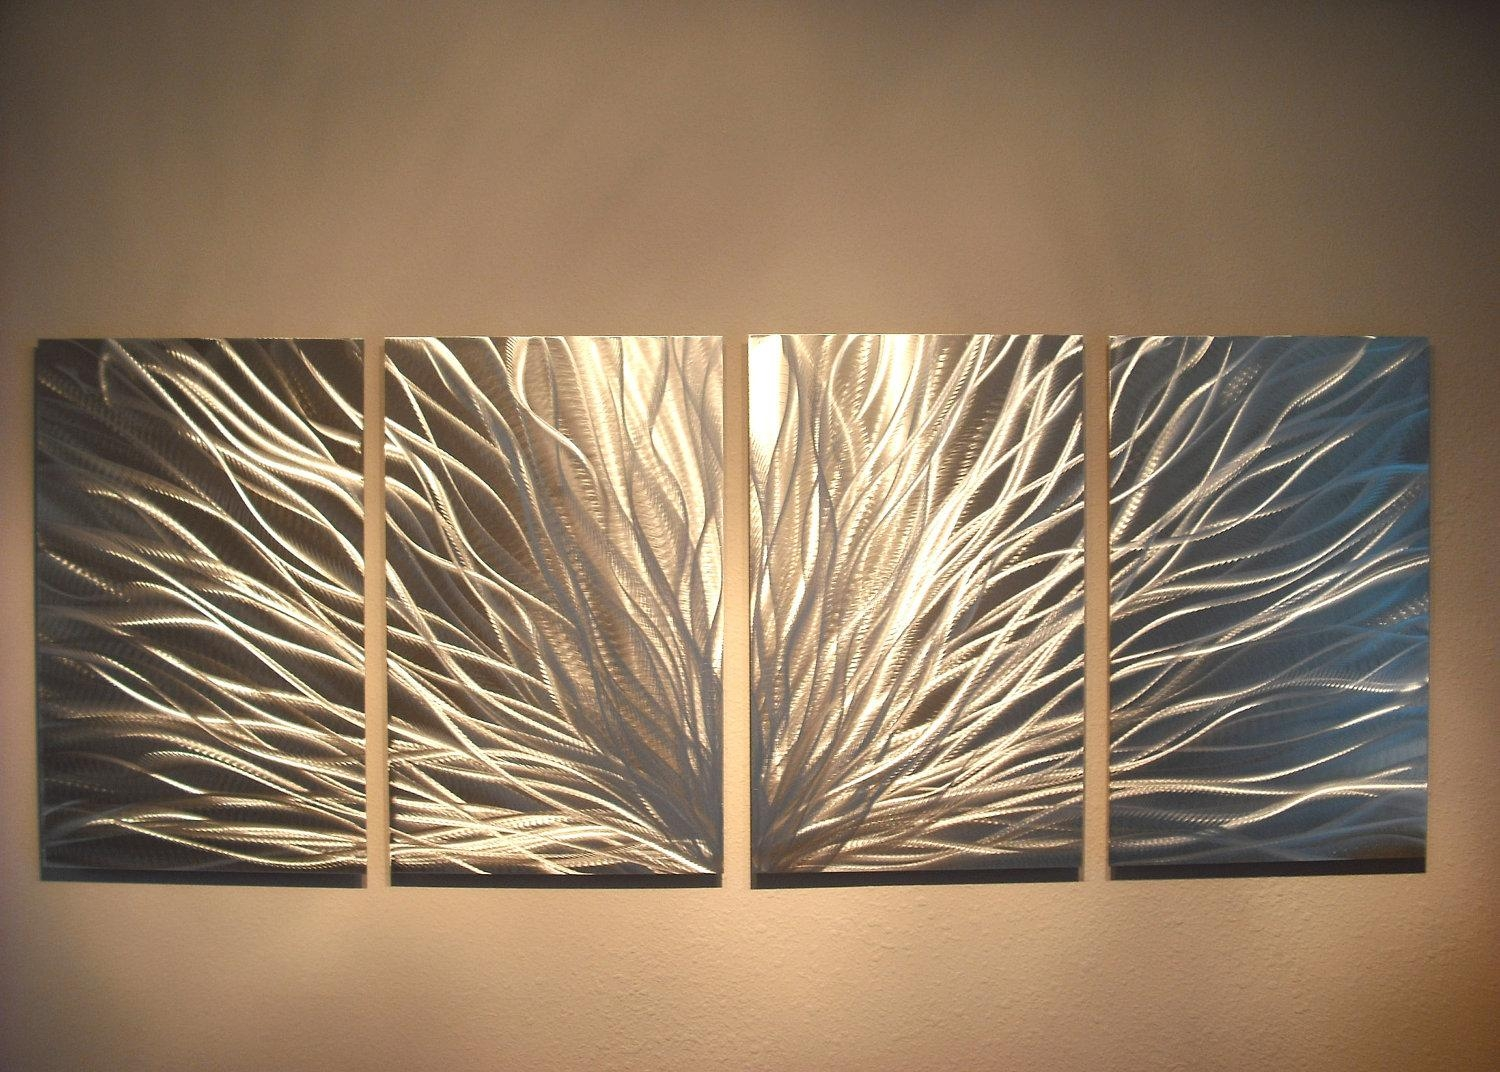 Radiance – Abstract Metal Wall Art Contemporary Modern Decor For Large Contemporary Wall Art (View 11 of 20)